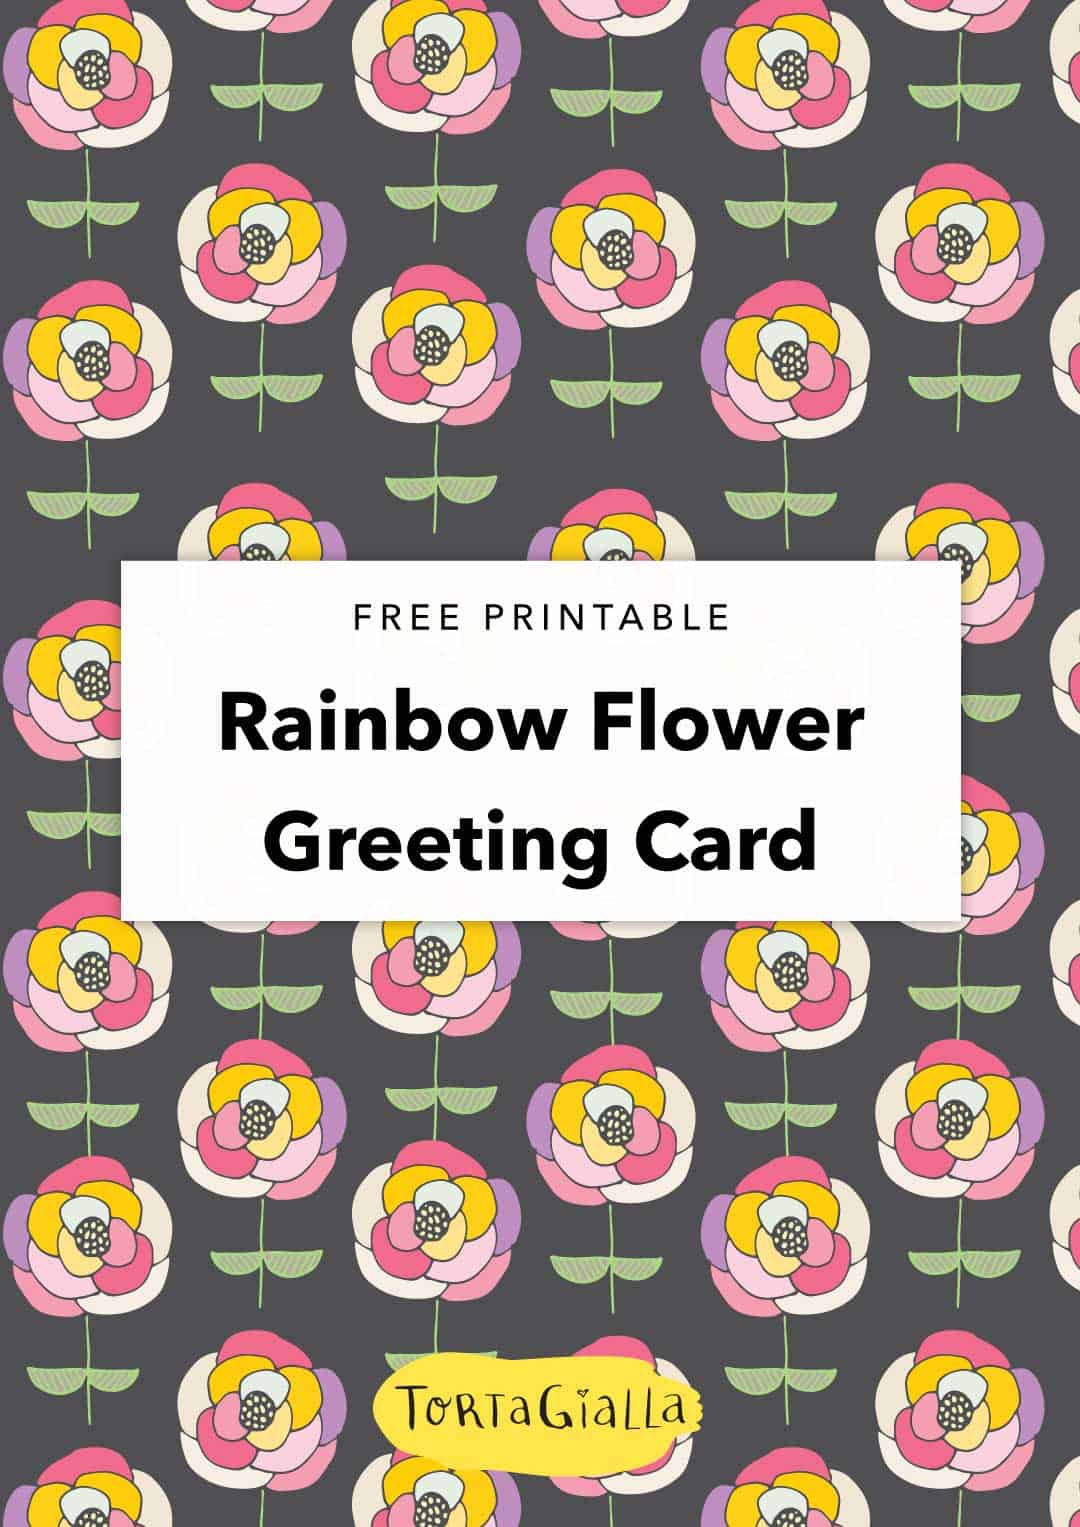 Free Printable Rainbow Flower Greeting Card